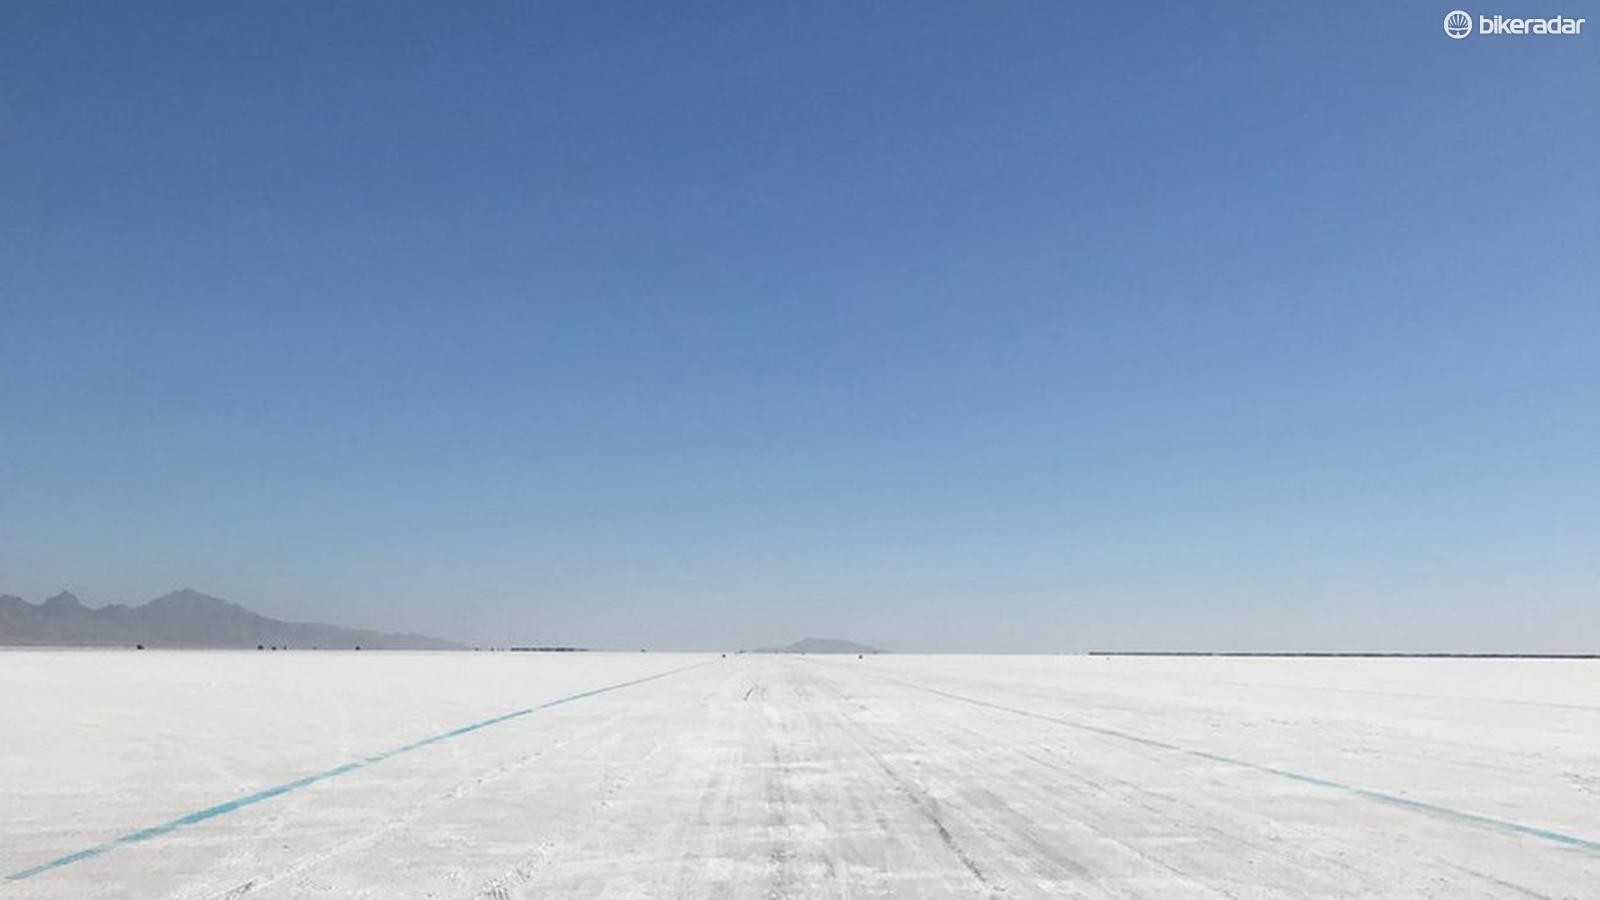 The famous Bonneville Salt Flats in Utah